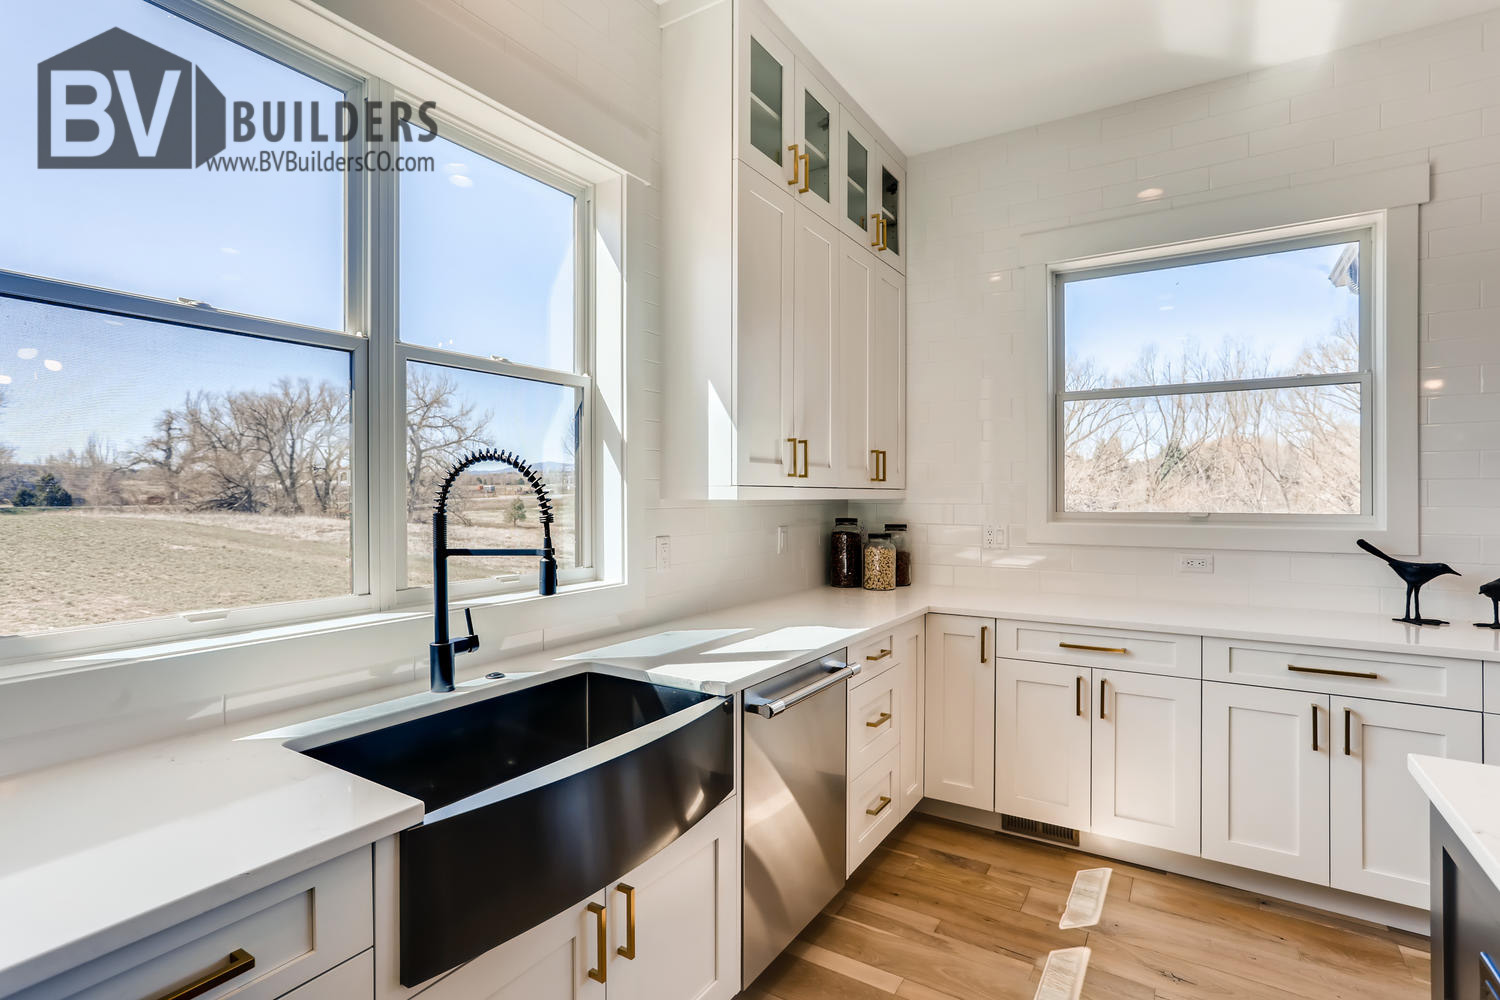 Modern farmhouse kitchen with farm sink and quartz countertops